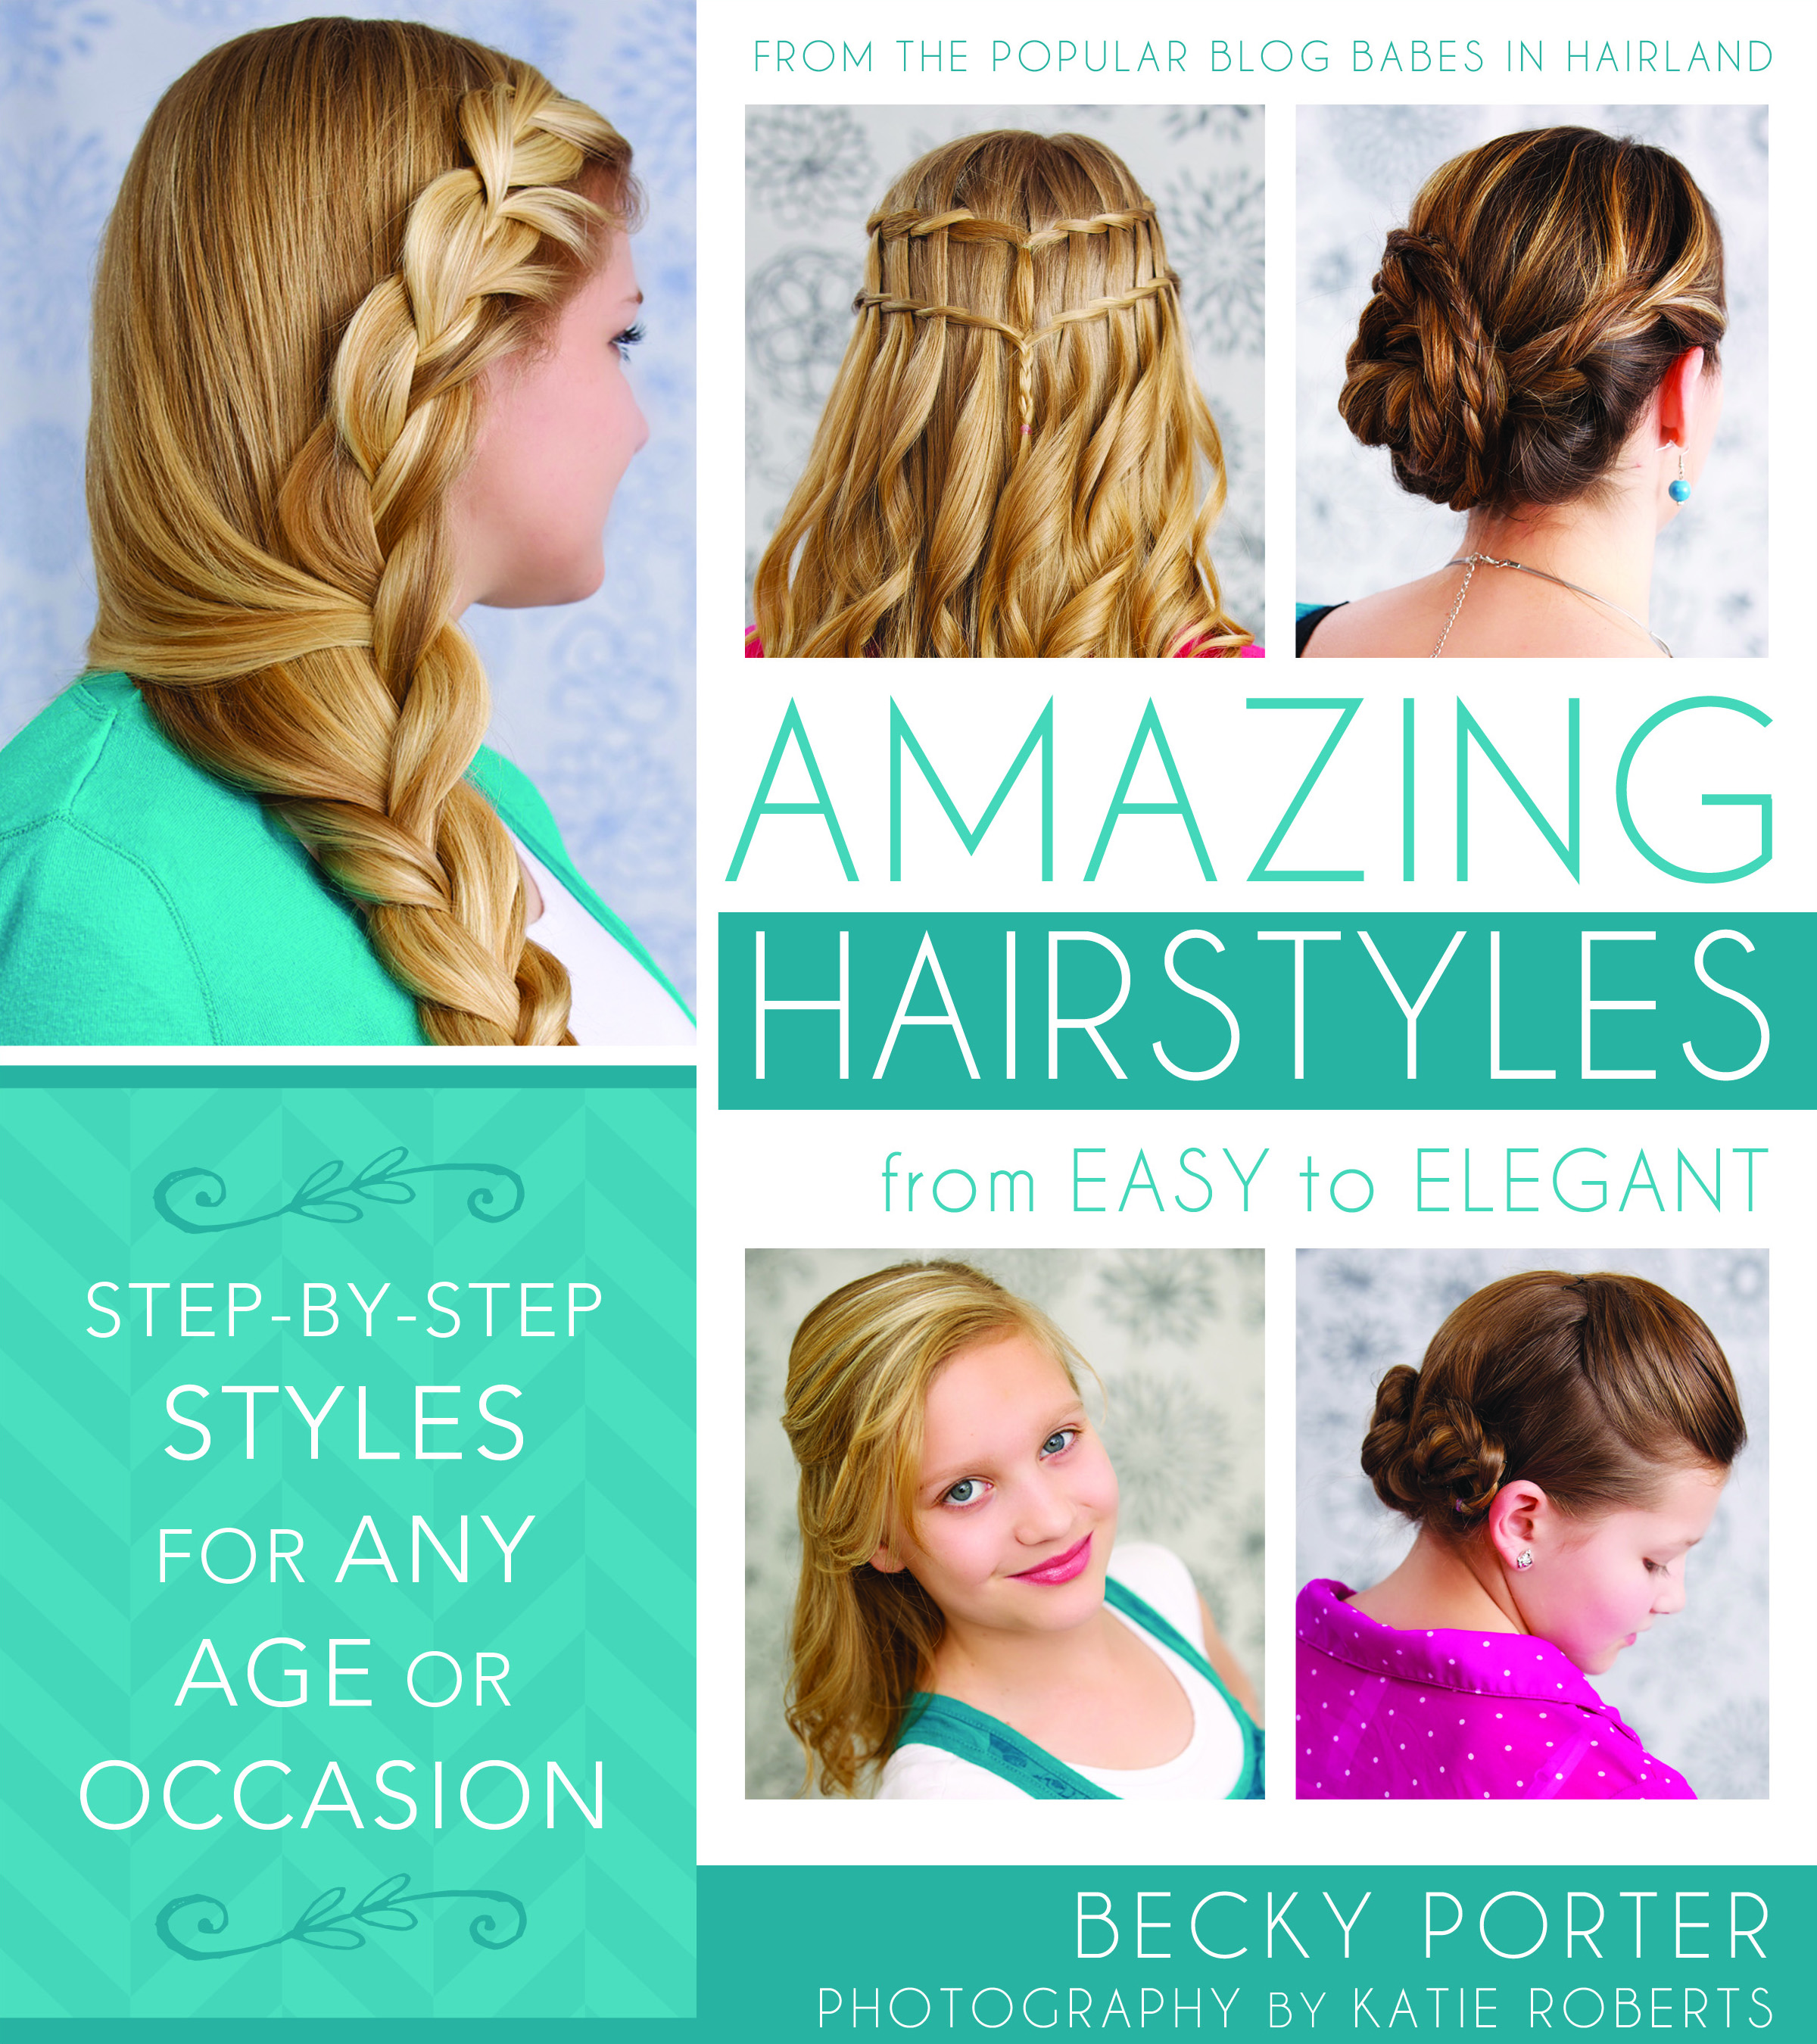 5 best hairstyle books for 2015 | BOOK ADDICT PATTI